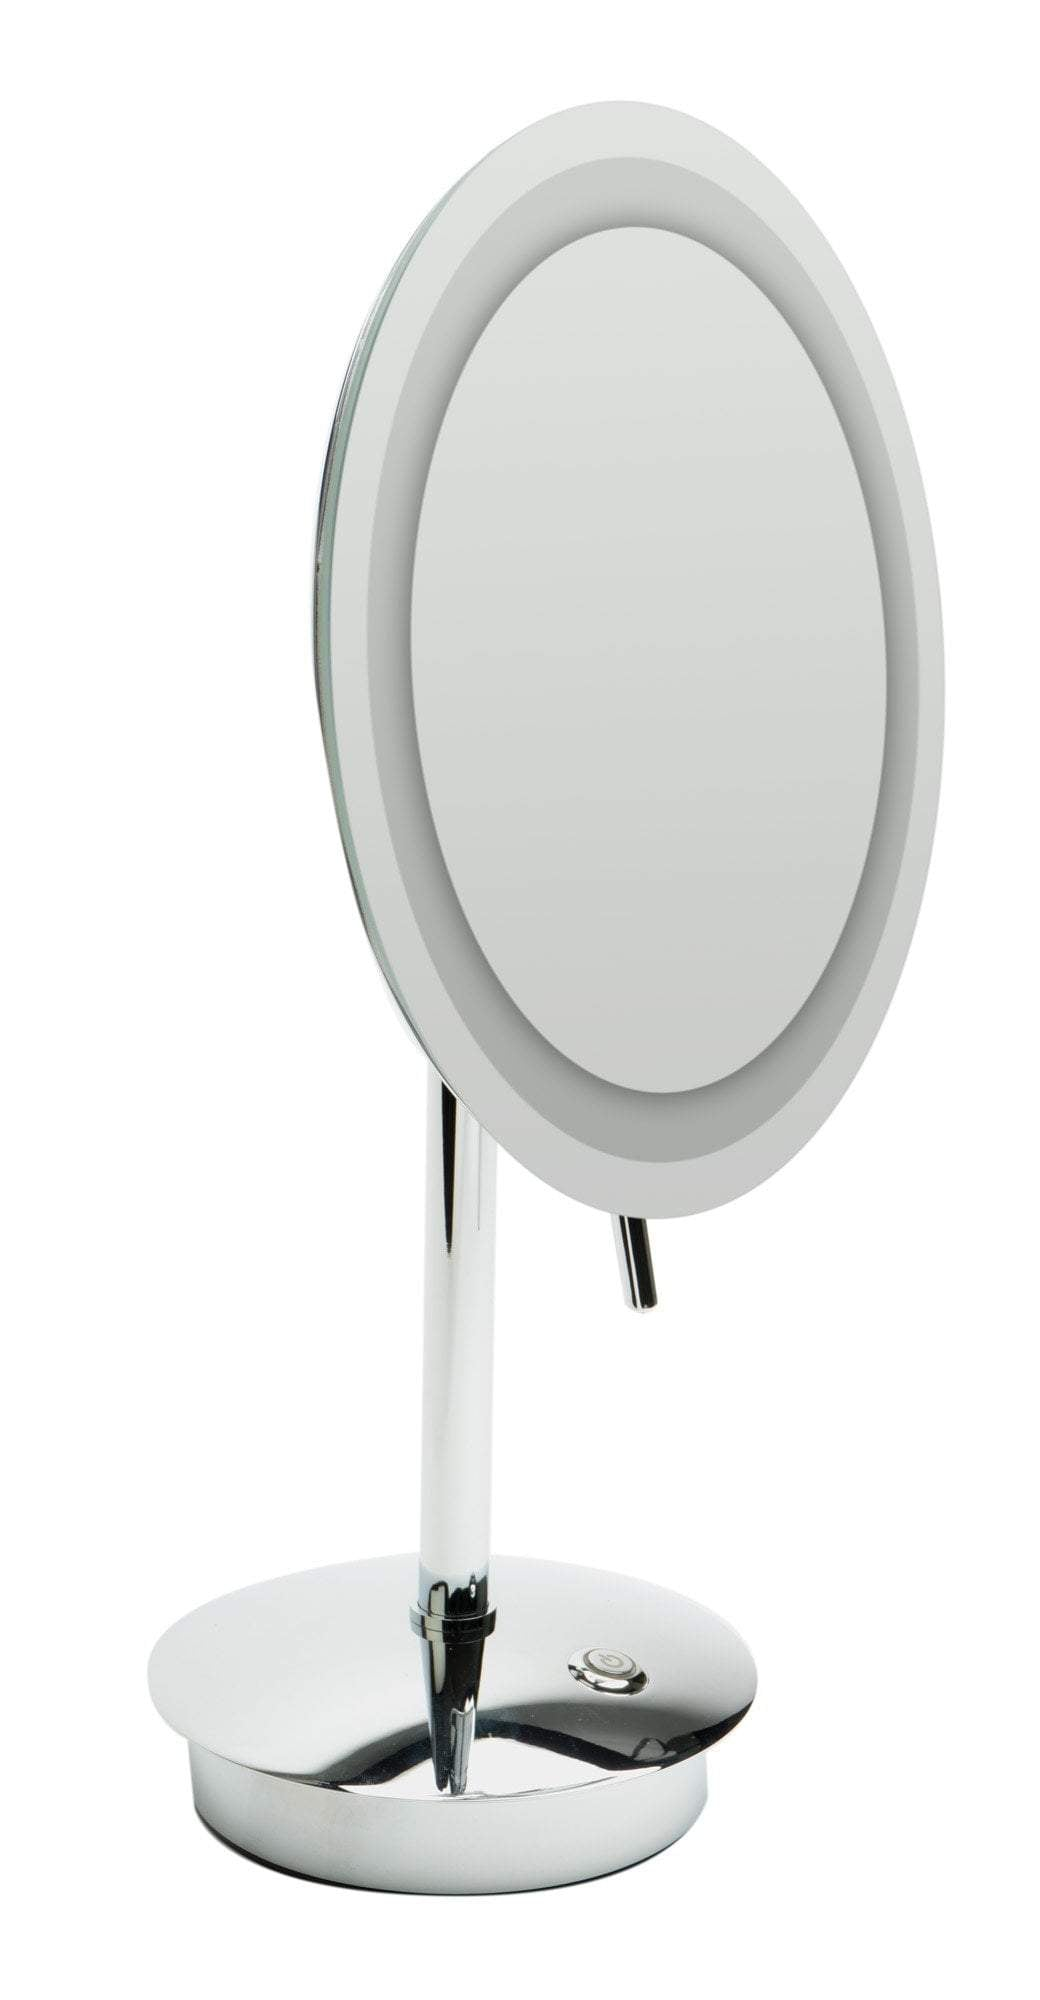 "ALFI brand ABM9FLED-PC Polished Chrome Tabletop Round 9"" 5x Magnifying Cosmetic Mirror with Light"